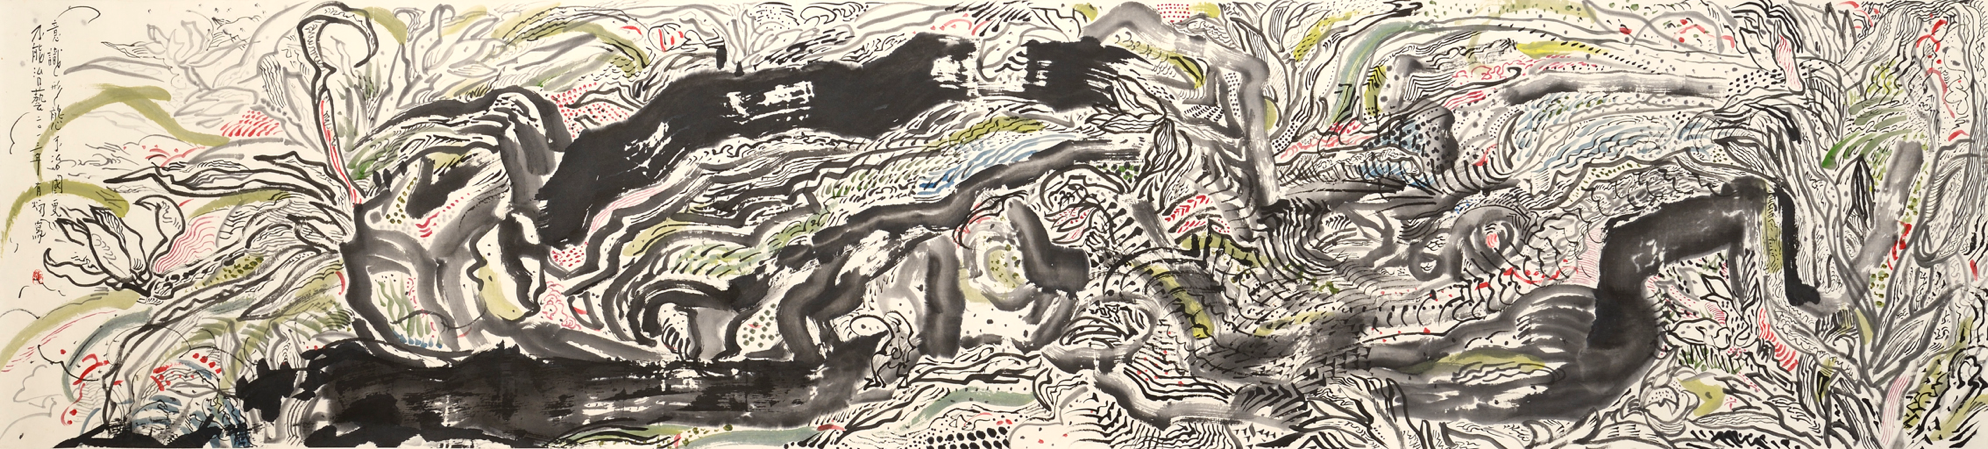 Tan Oe Pang, The Precious Stone and Orchid, ink and pigment on rice paper, 53 x 243 cm